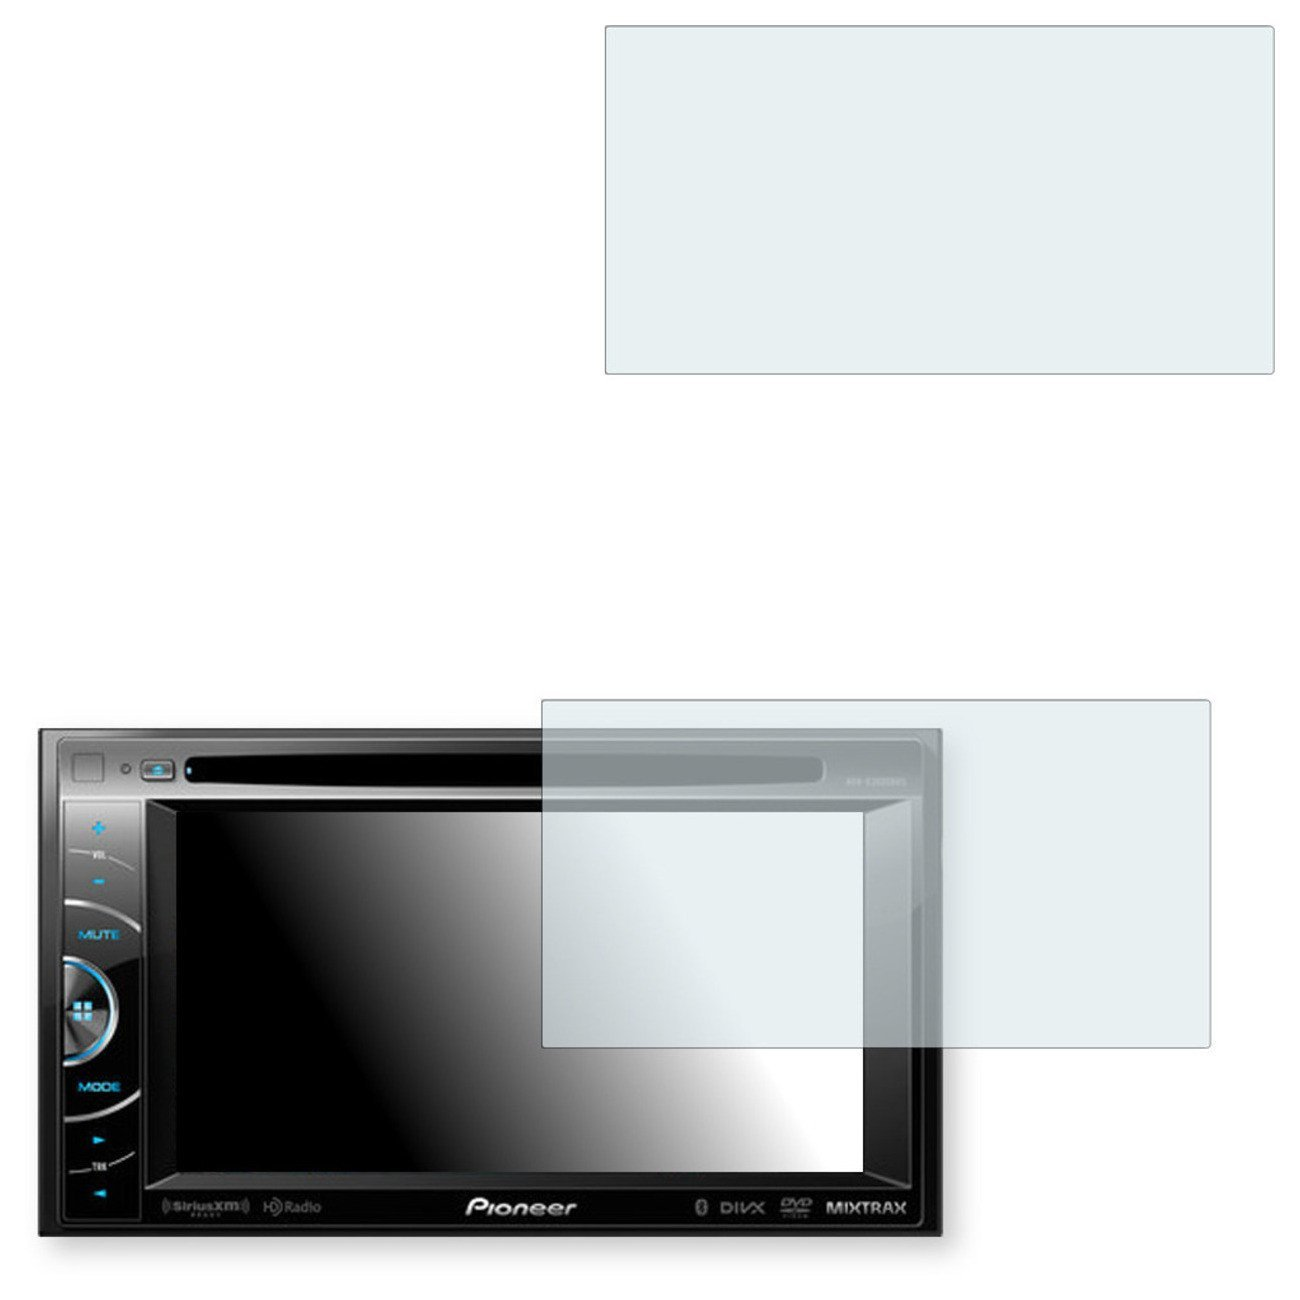 2x Golebo Crystal Clear screen protector for Pioneer AVH-X3600BHS - (Transparent screen protector, Air pocket free application, Easy to remove)